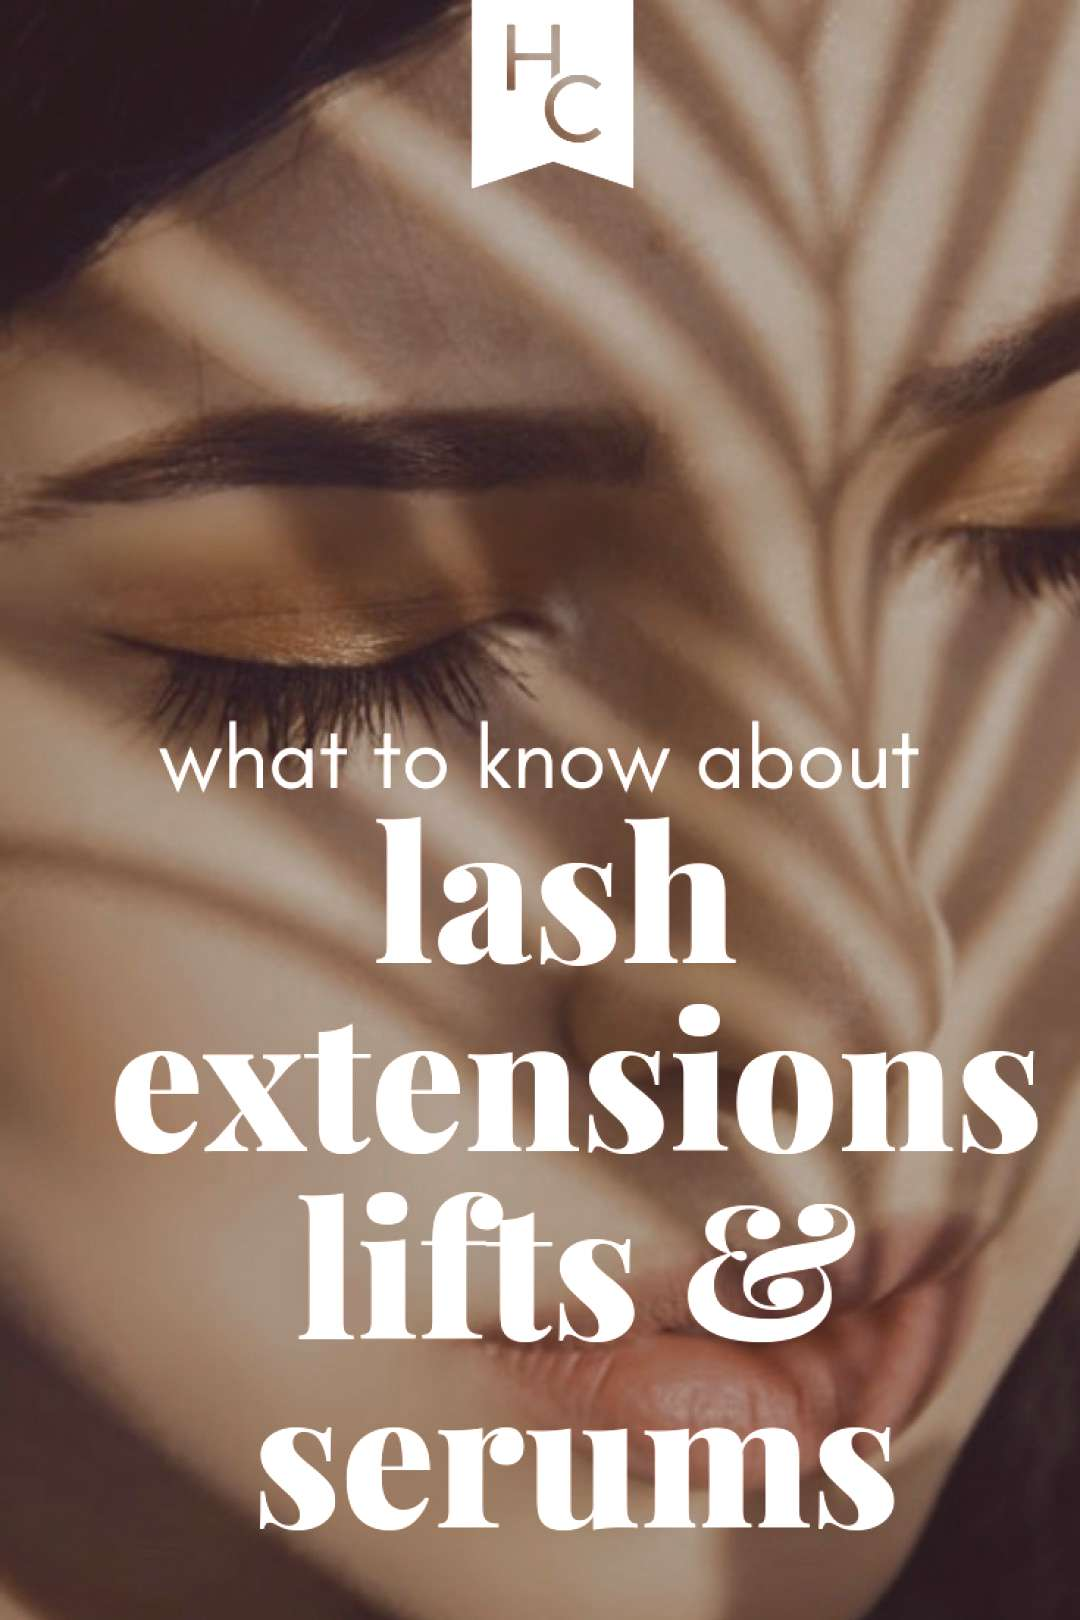 The Tea on Lash Extensions, Lifts amp Growth Serums. Womens Makeup Ideas | Looks | Tips and Tricks |